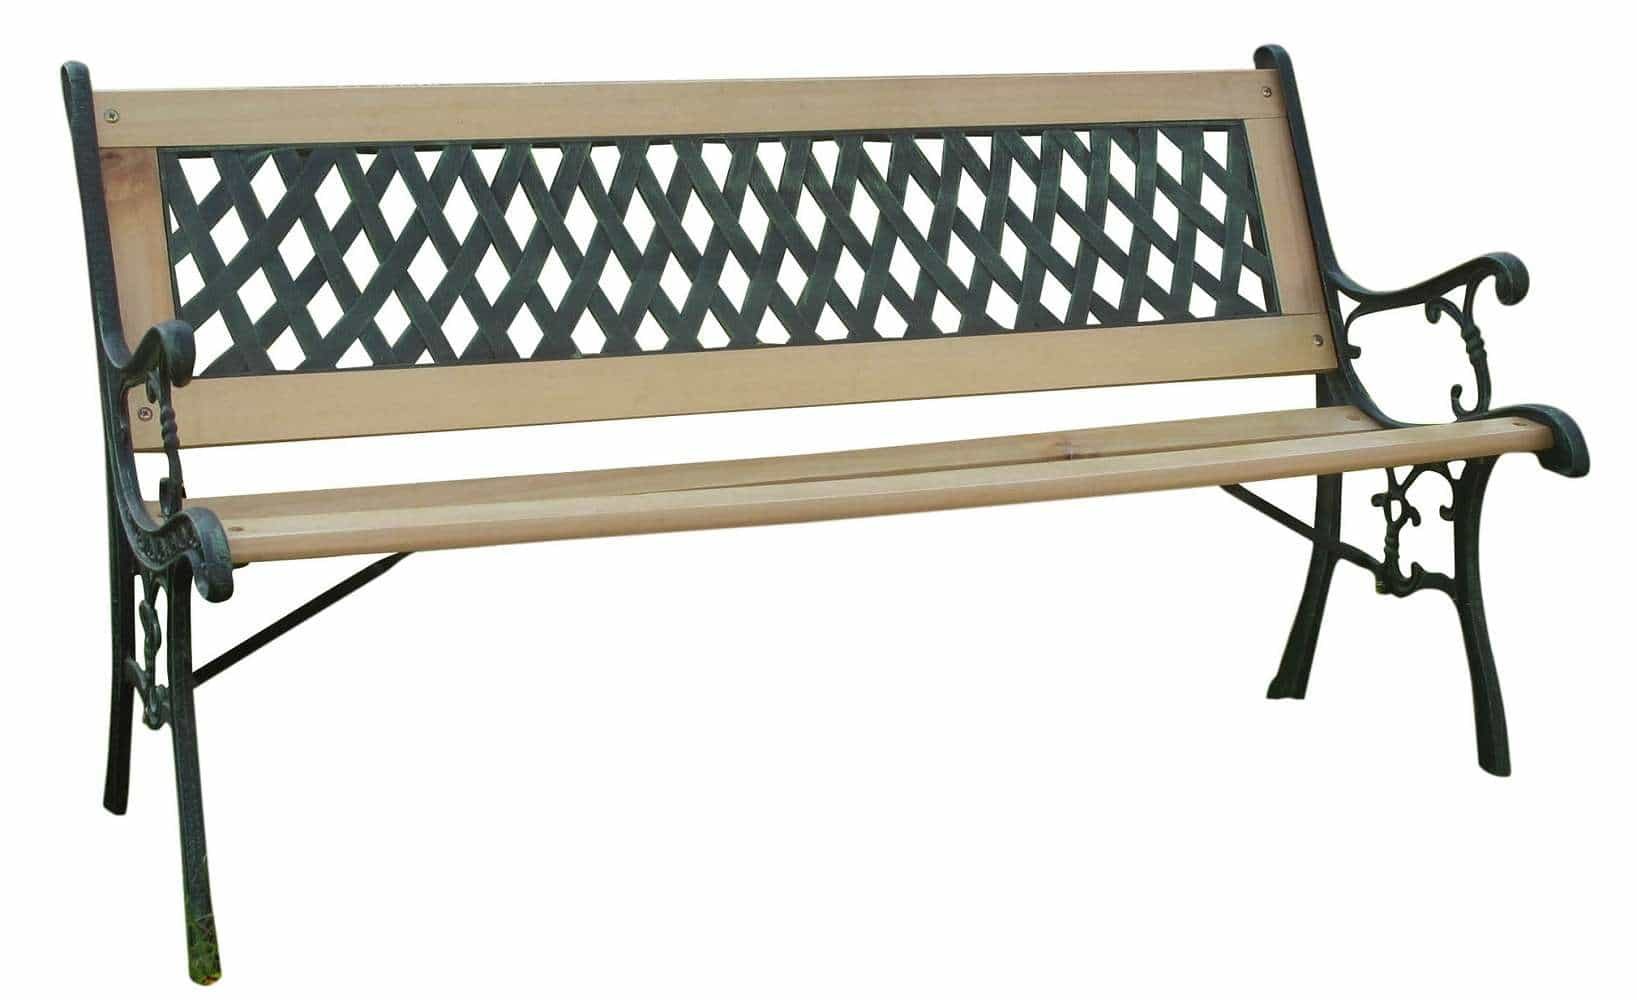 Wooden Bench With Steel Supports This Item Is Strong And